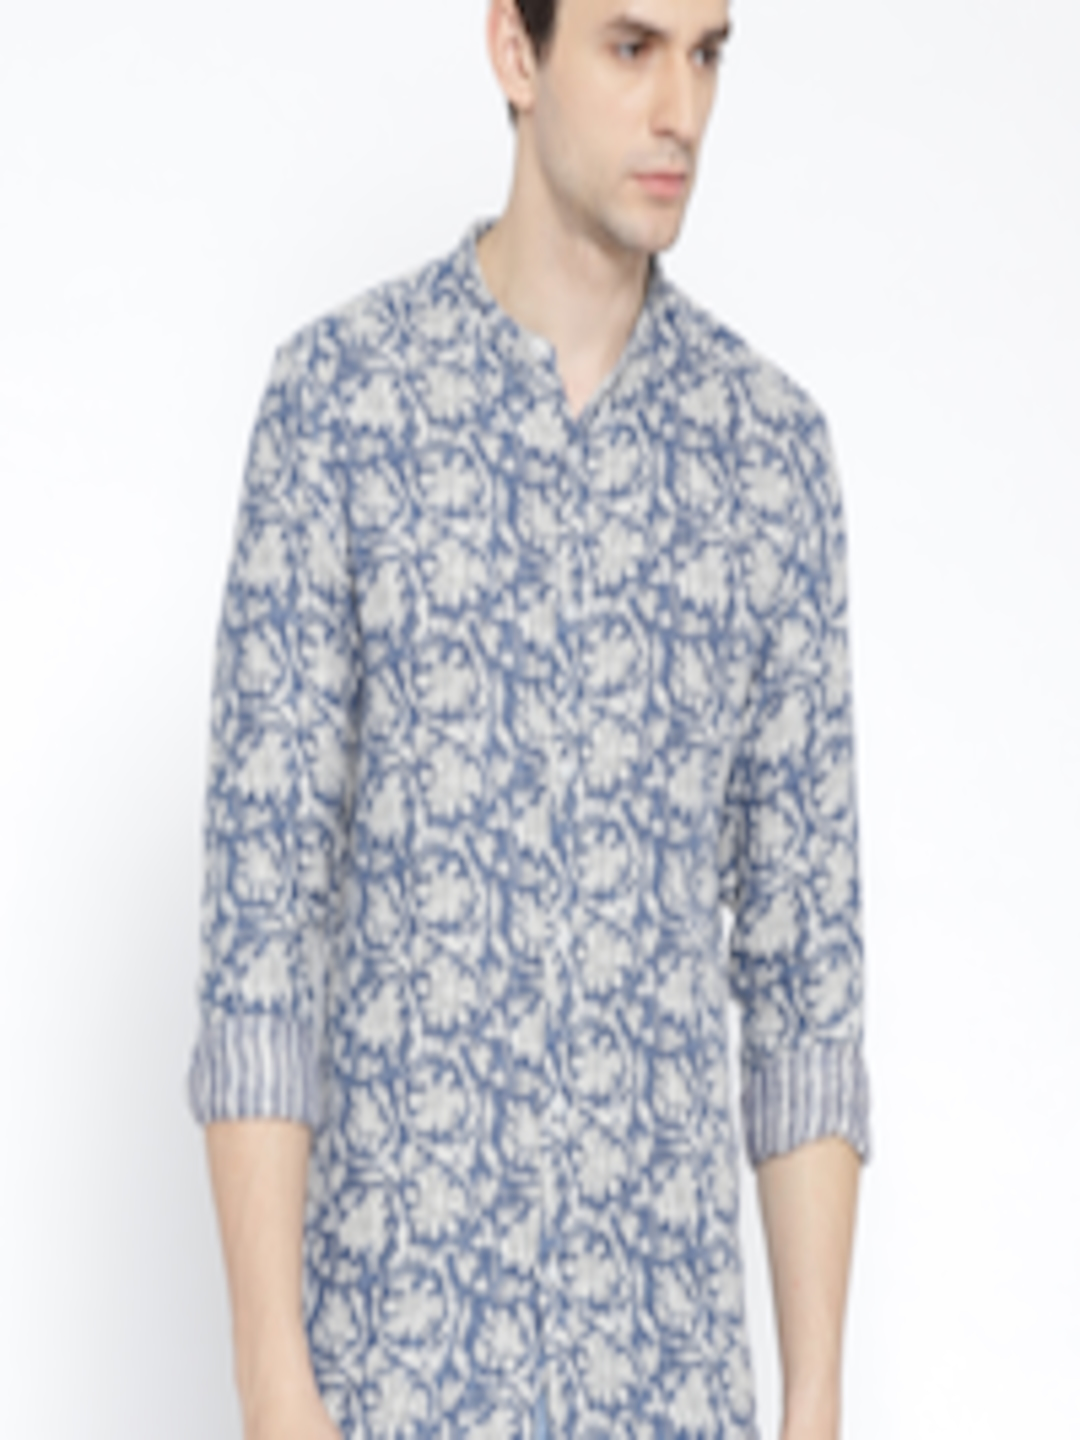 Guy in a floral shirt jacking off